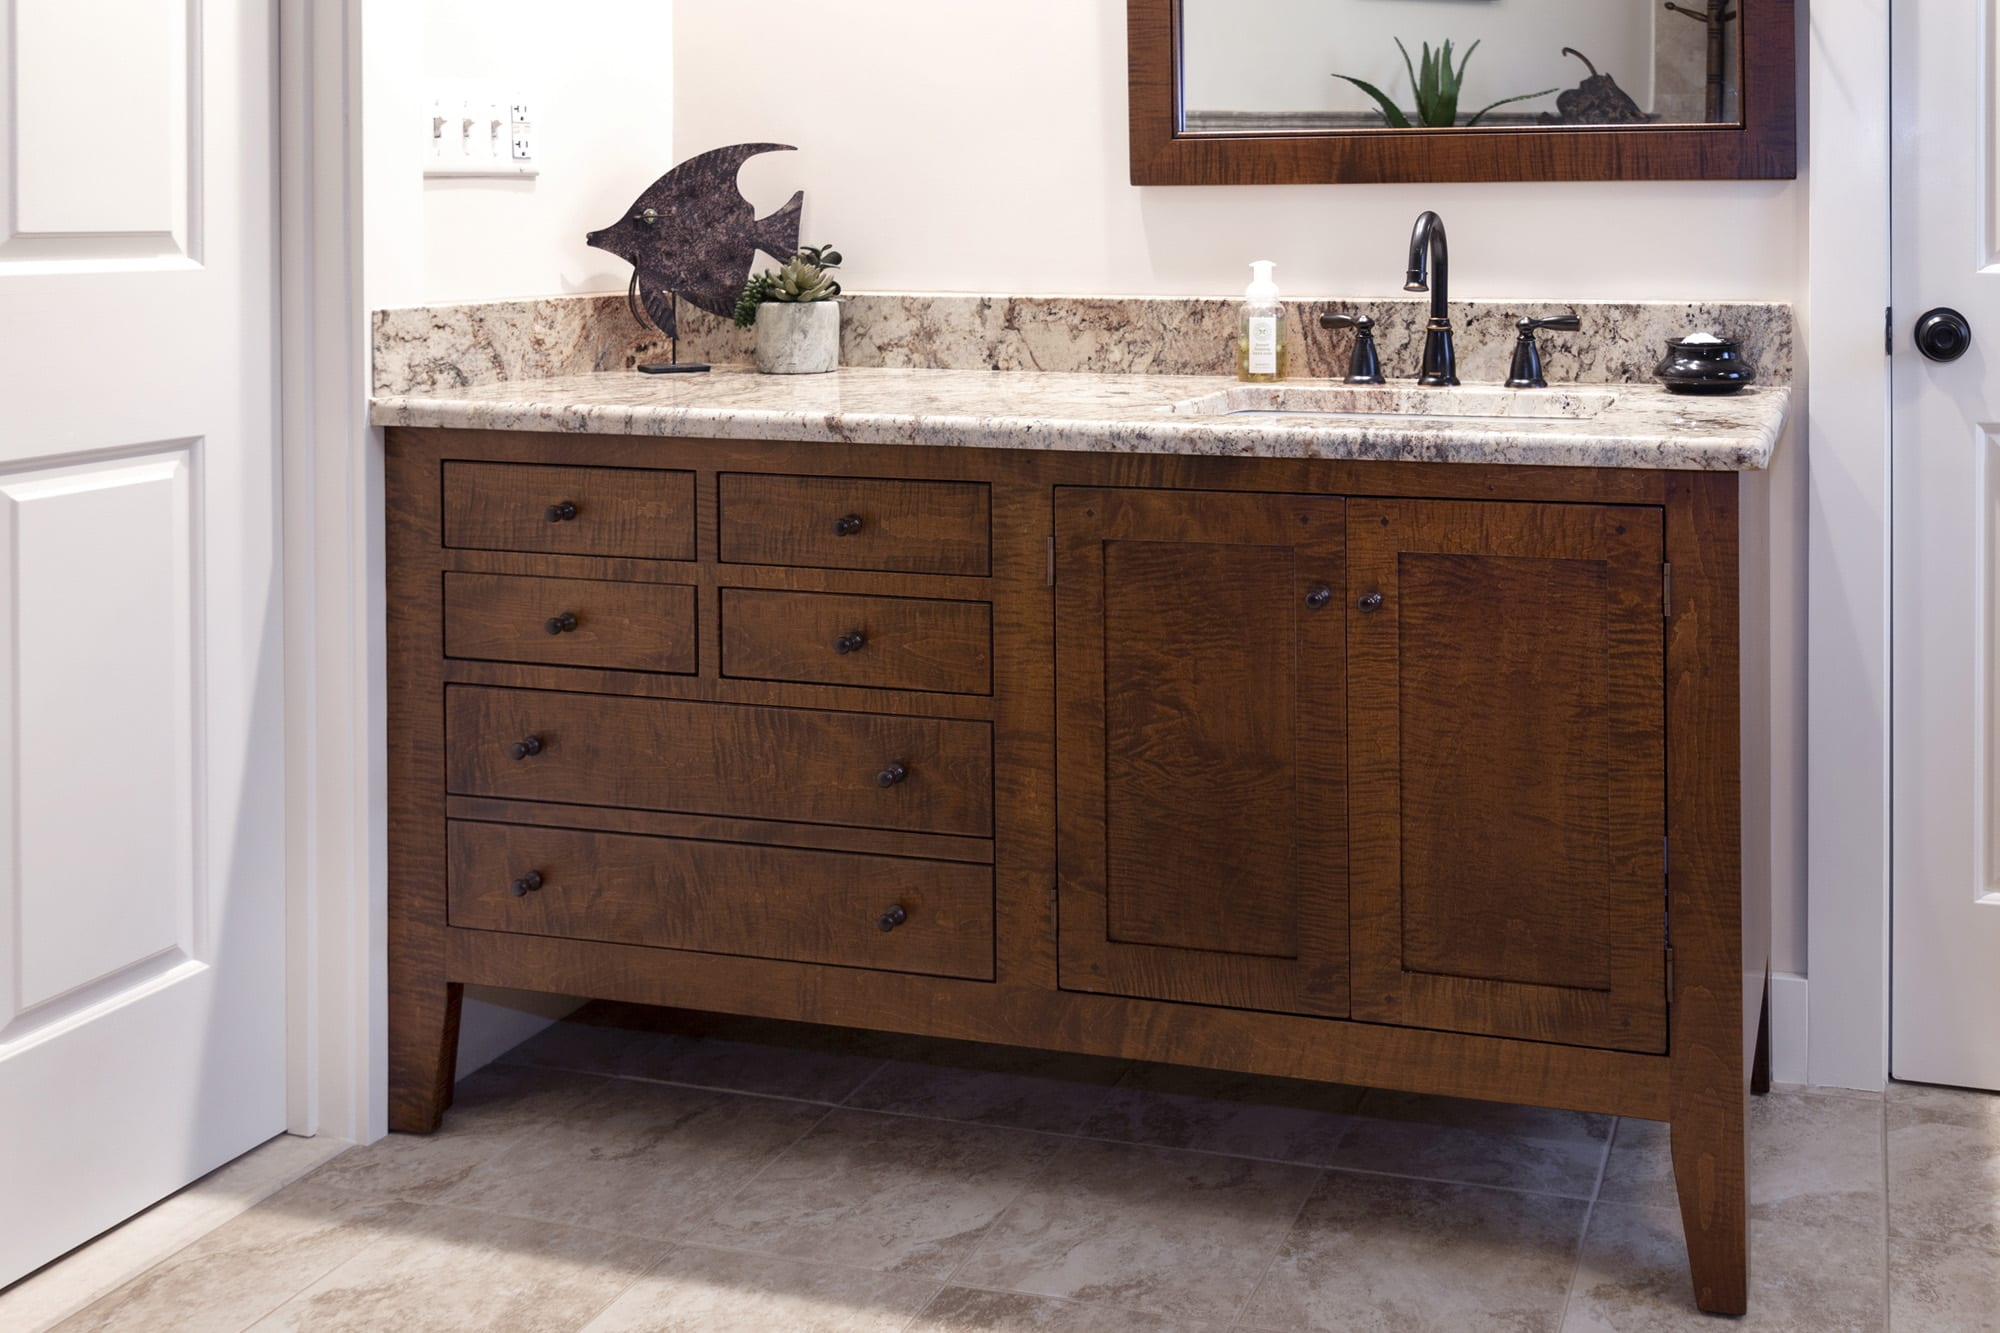 Shaker Style Bathroom Vanities Of High